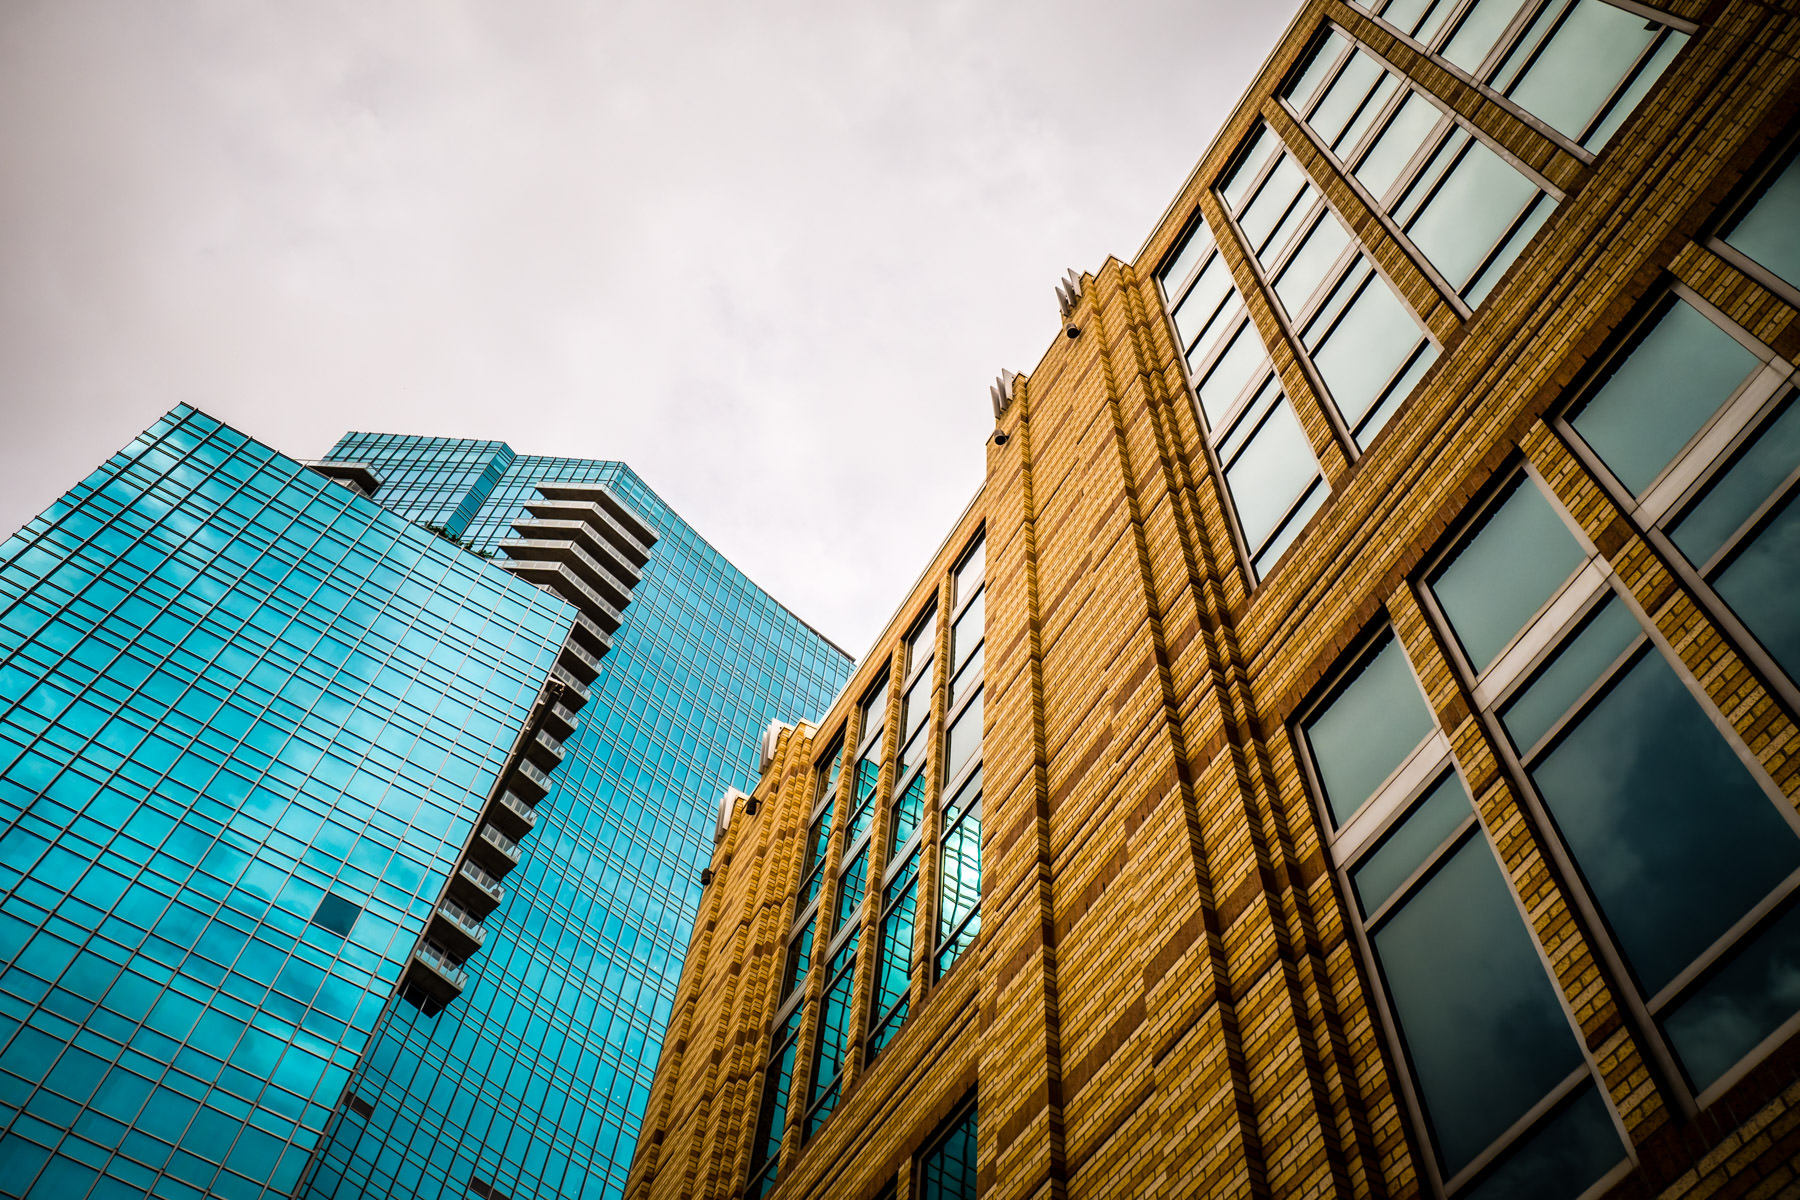 The Omni Fort Worth Hotel rises over the city's convention center in Downtown Fort Worth, Texas.